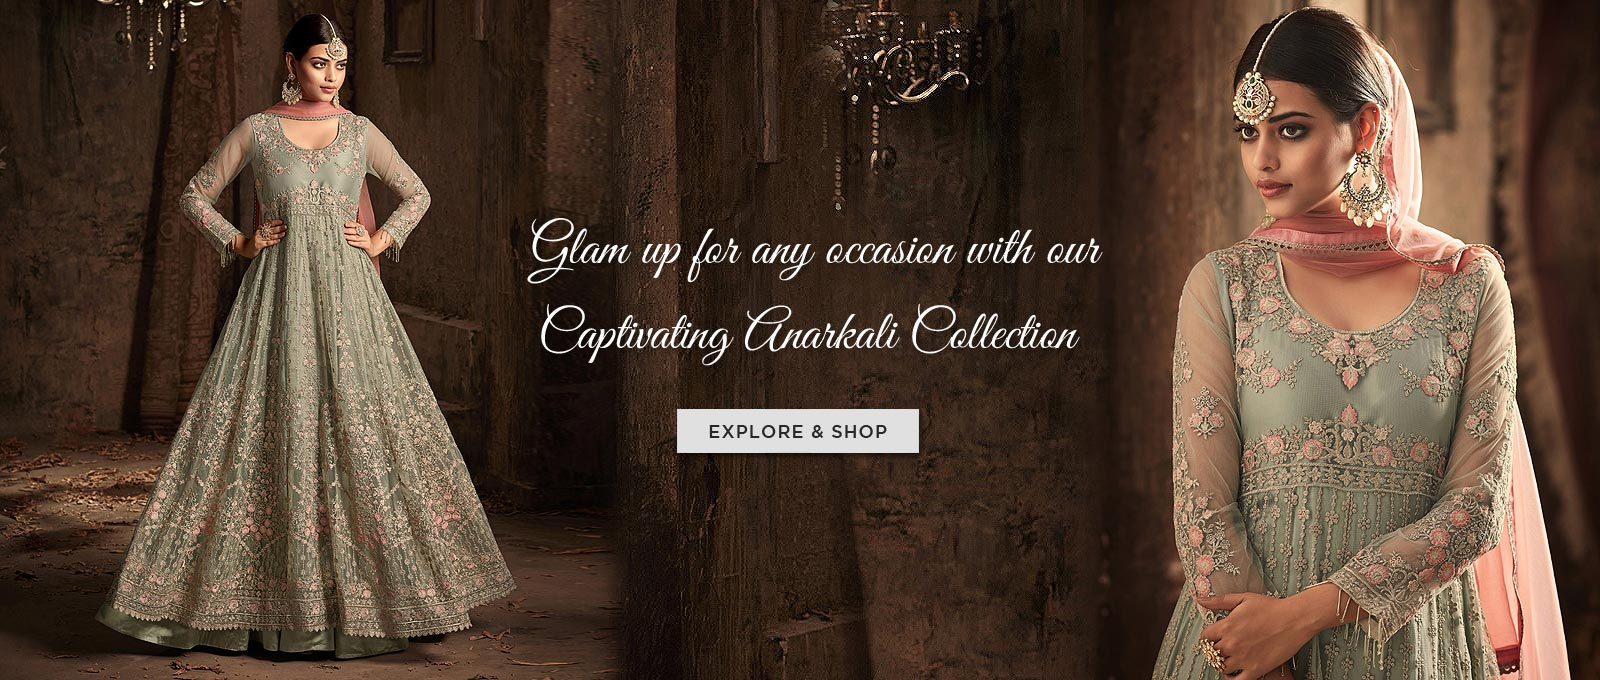 Glamp up for any occasion with our anarkali collecton